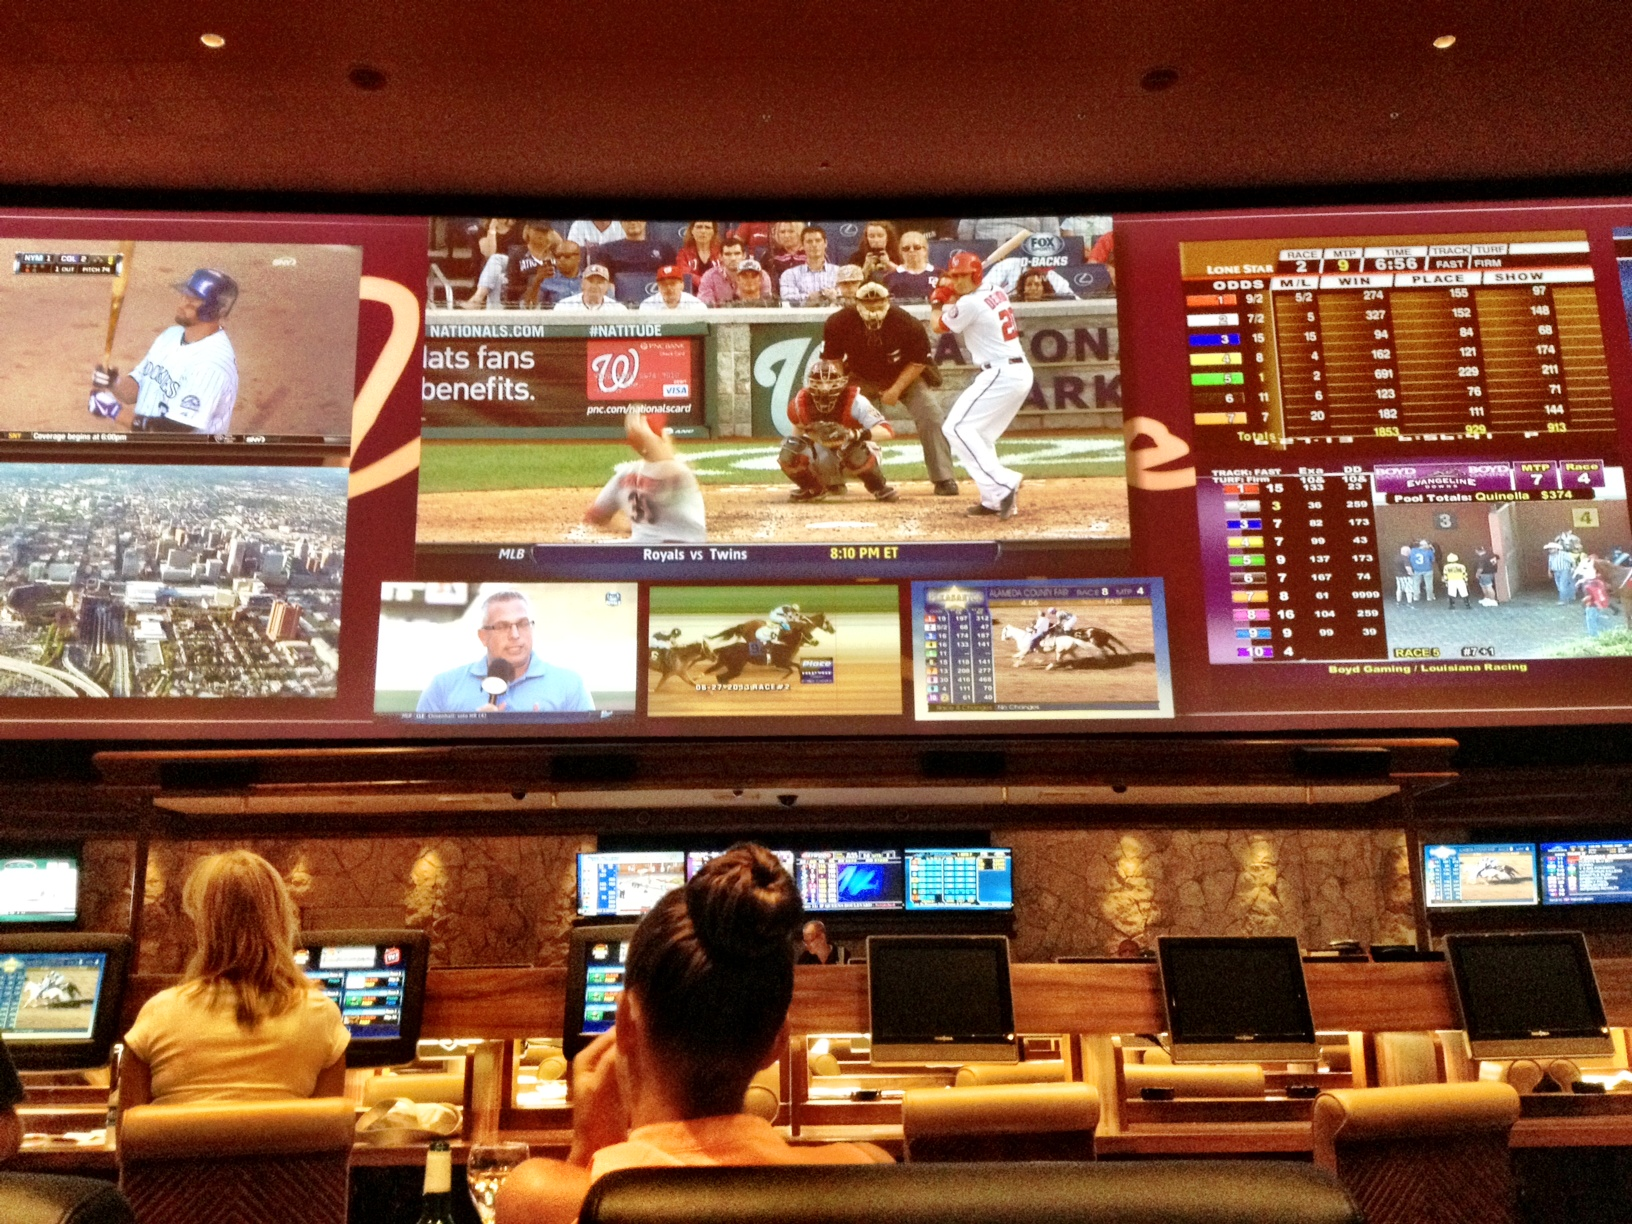 las vegas sports book parlay odds